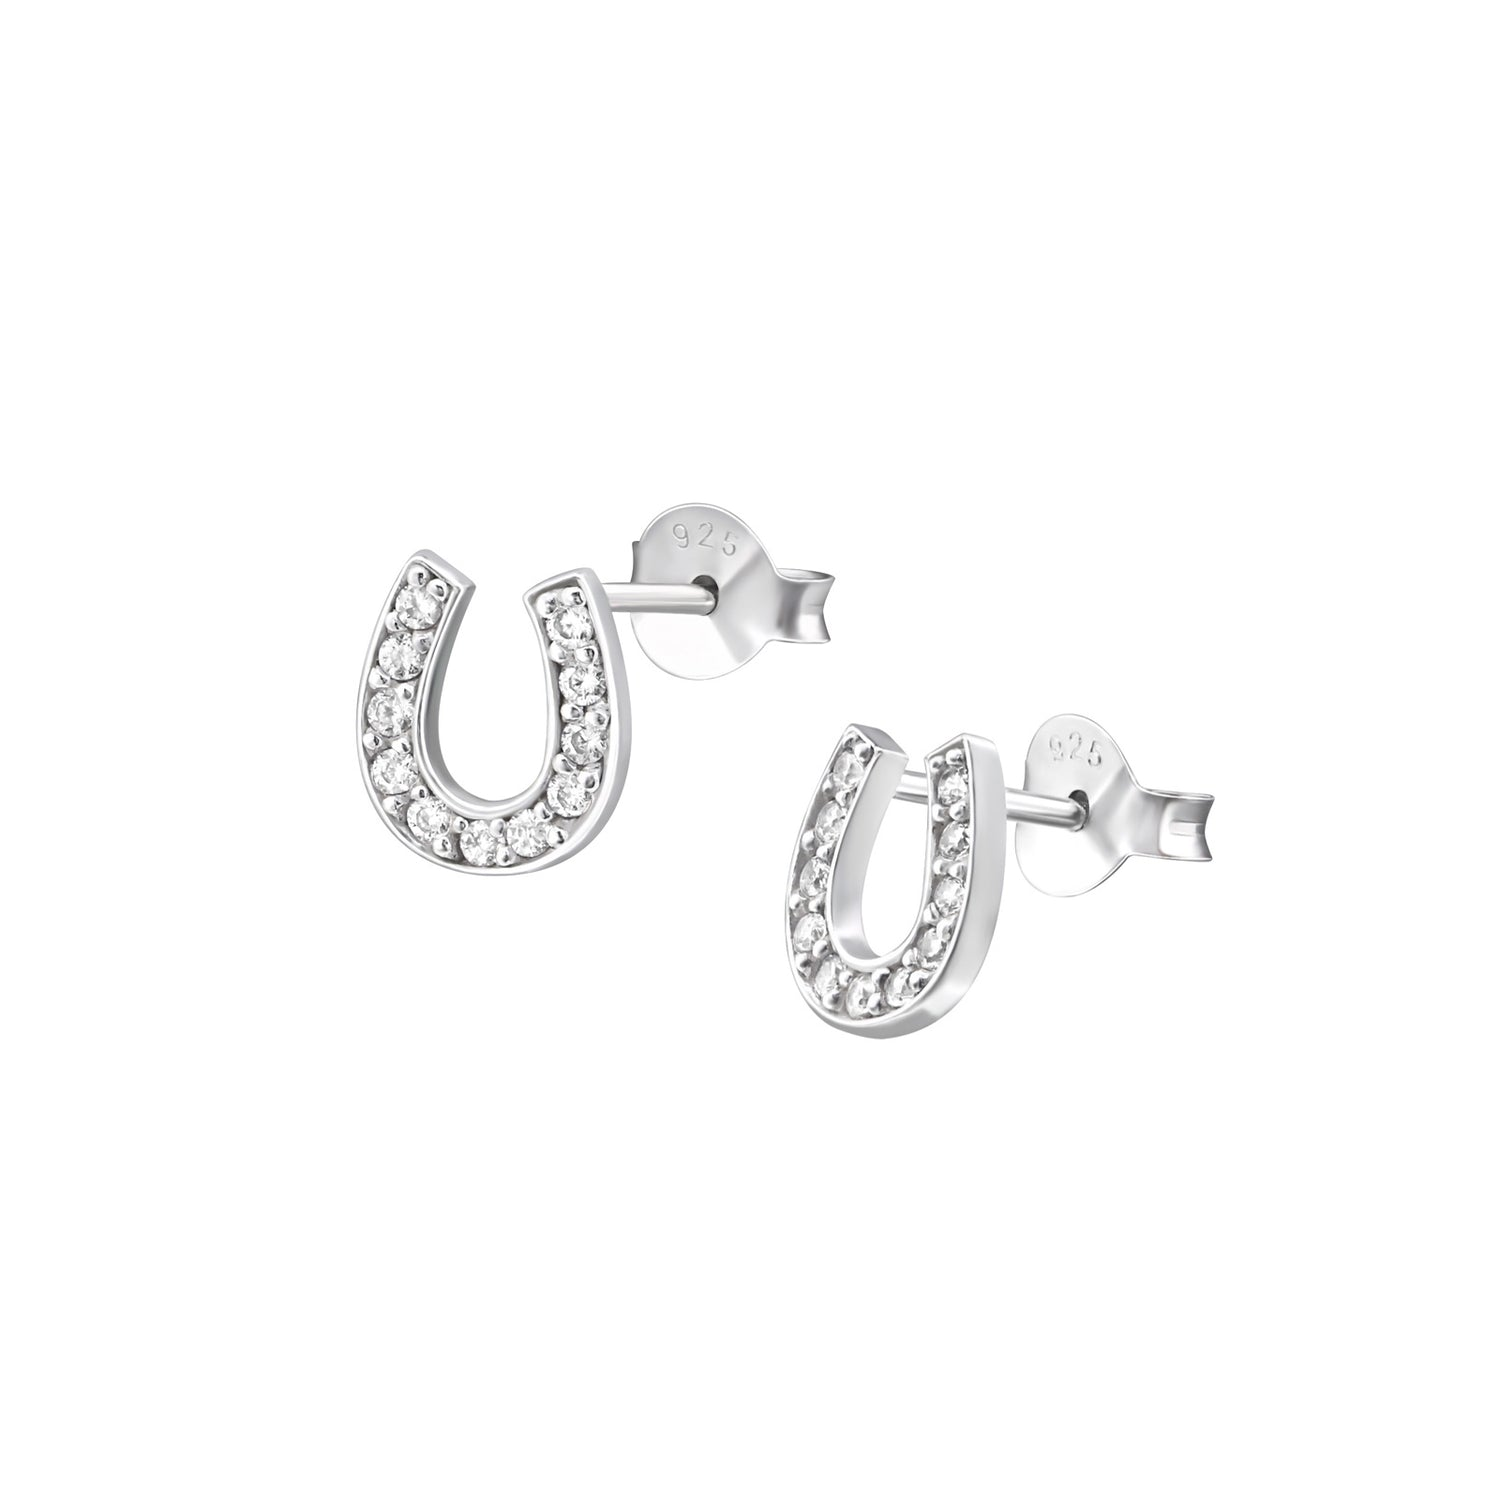 Sparkle Horseshoe Stud Earrings